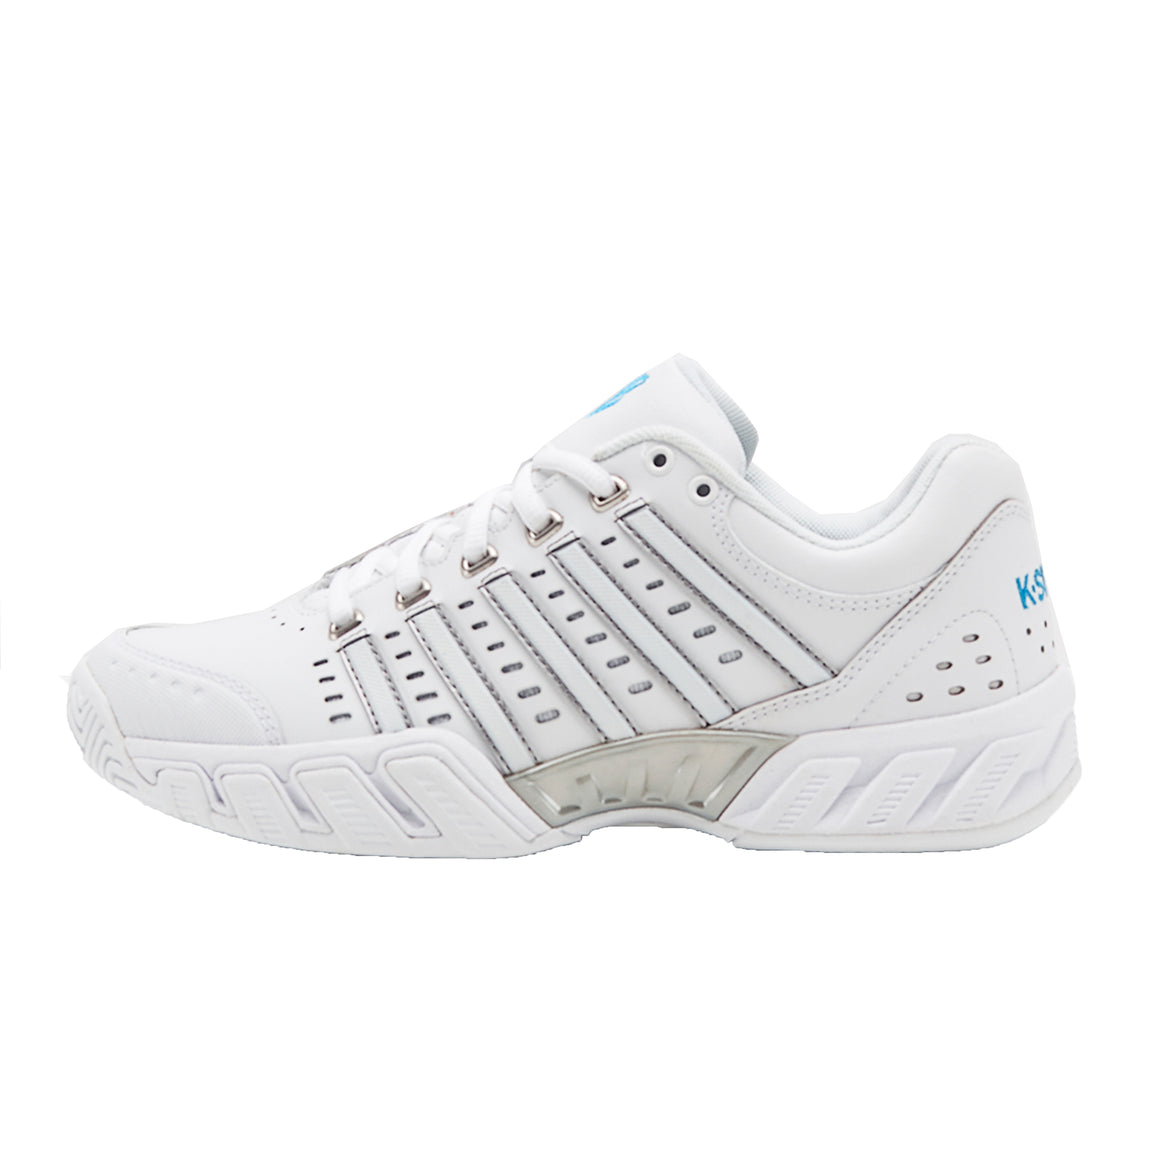 Bigshot Light Leather Trainers for Women in White & Blue